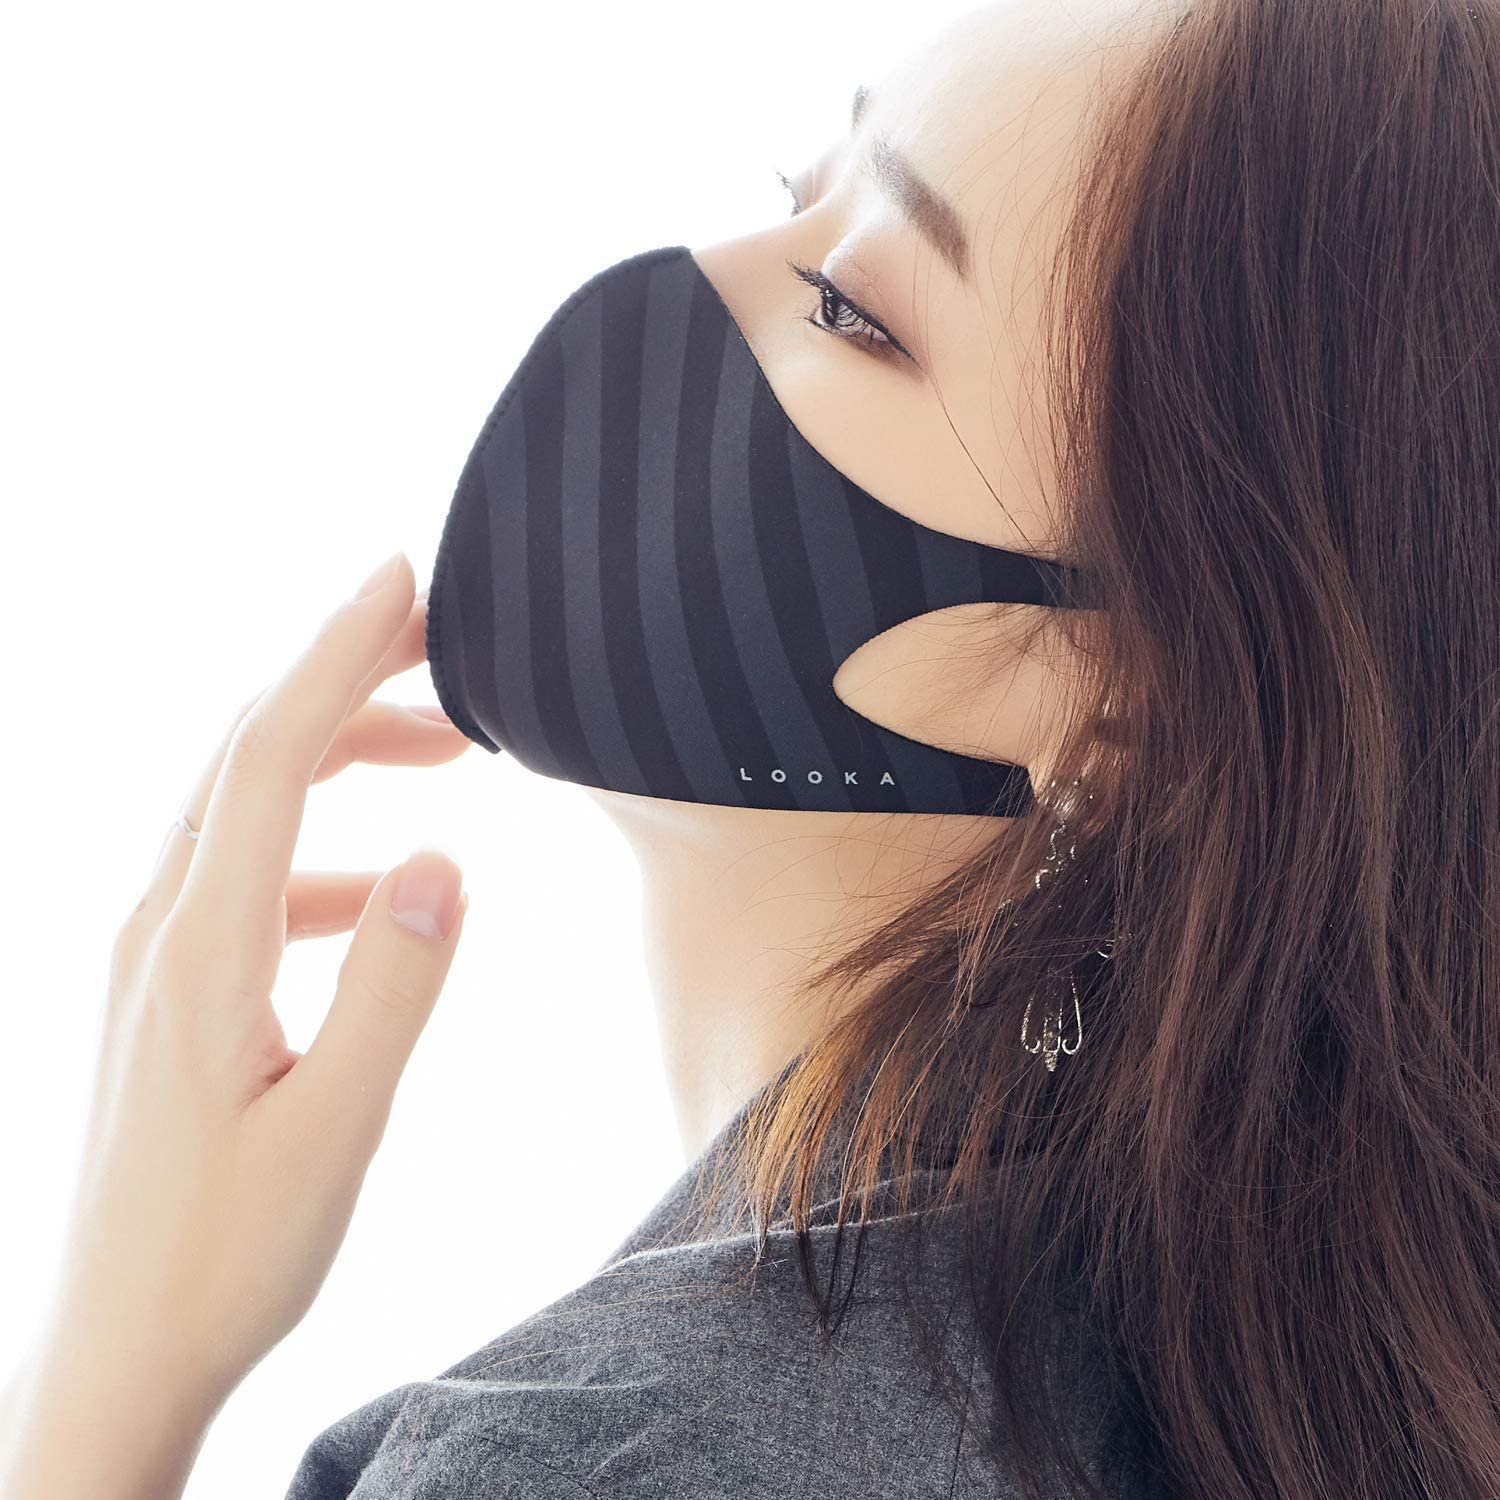 LOOKA MASK Protective Fashion Air Mask | High Quality | Washable and Reusable | Double Layered Face Mask | Modern Stripe Black X Grey (Medium)